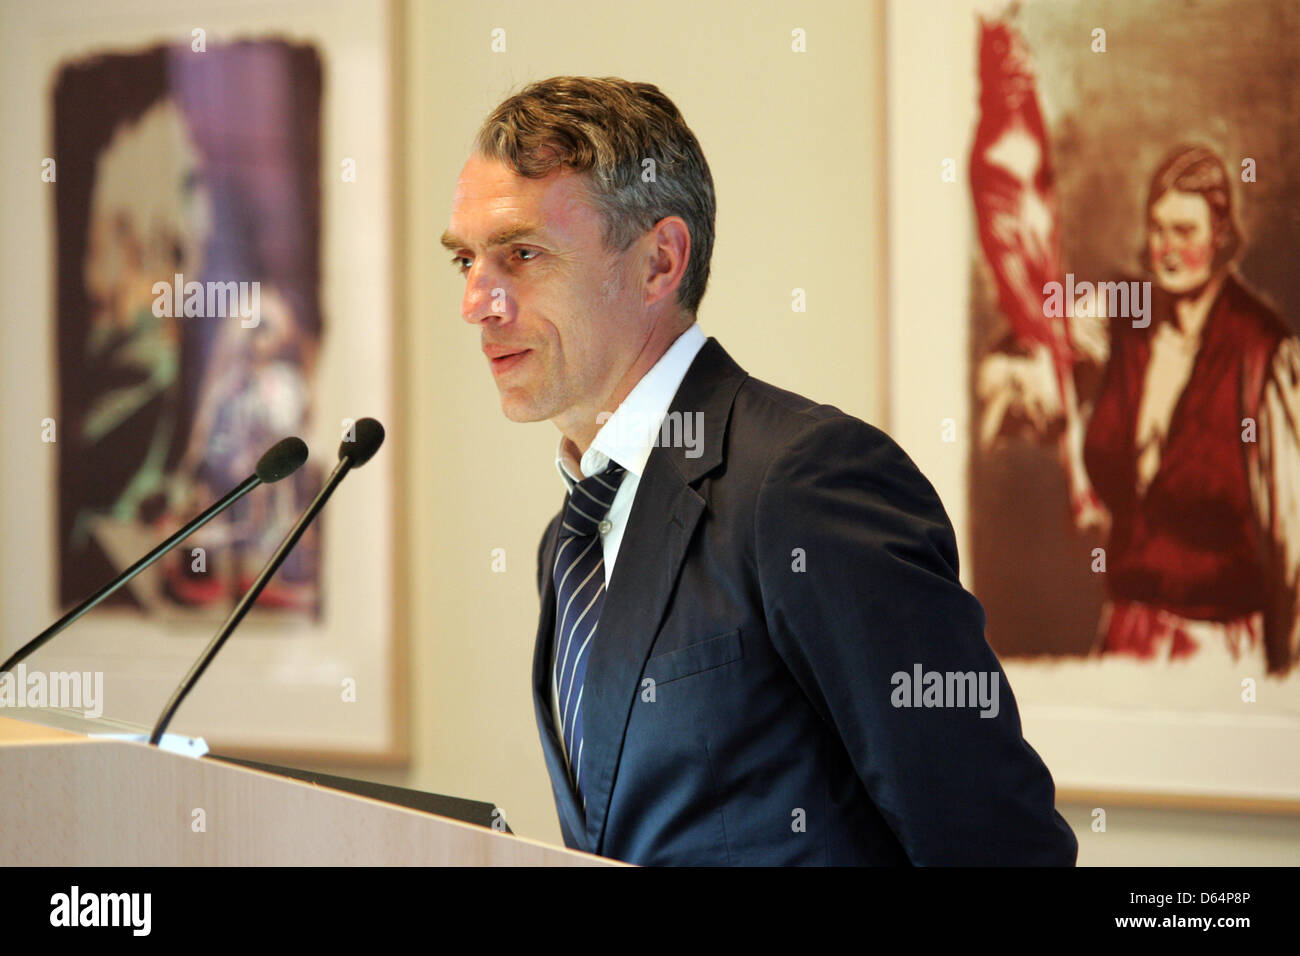 German artist Neo Rauch speaks during a press conference on the opening of the 'Grafikstiftung Neo Rauch' (Grafics Stock Photo